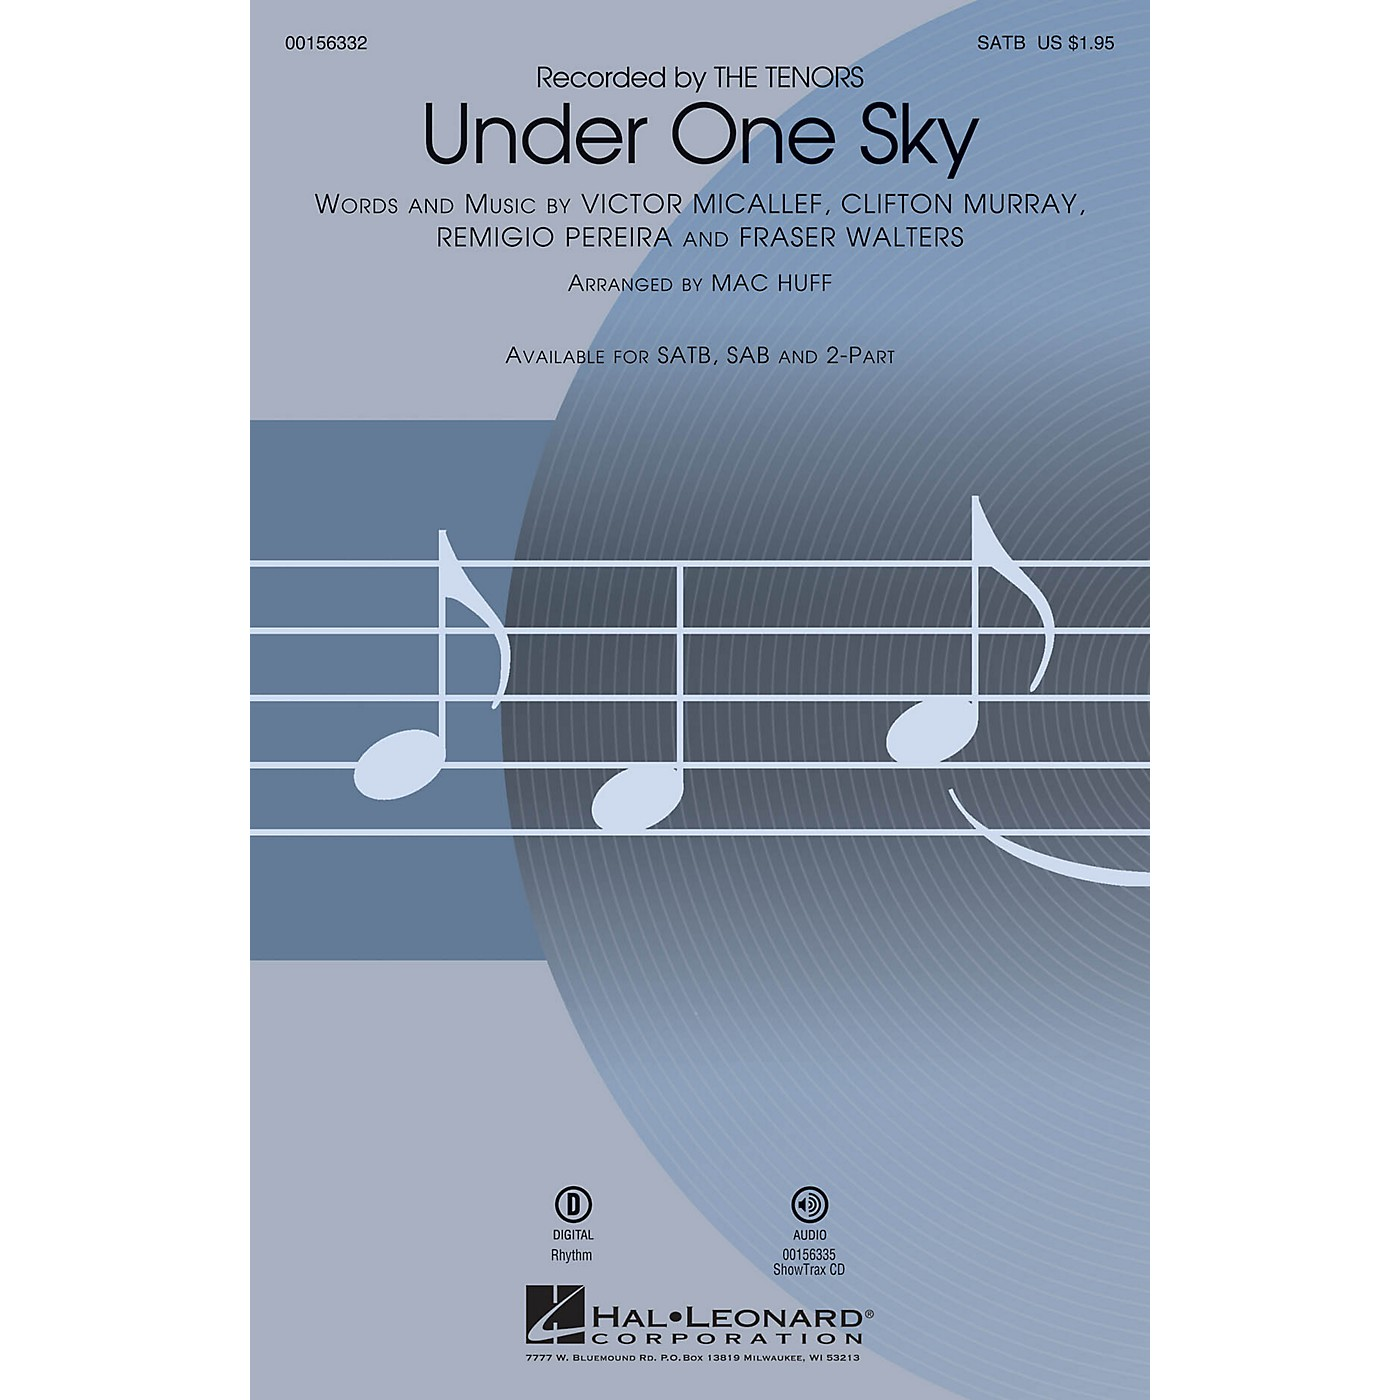 Hal Leonard Under One Sky SATB by The Tenors arranged by Mac Huff thumbnail